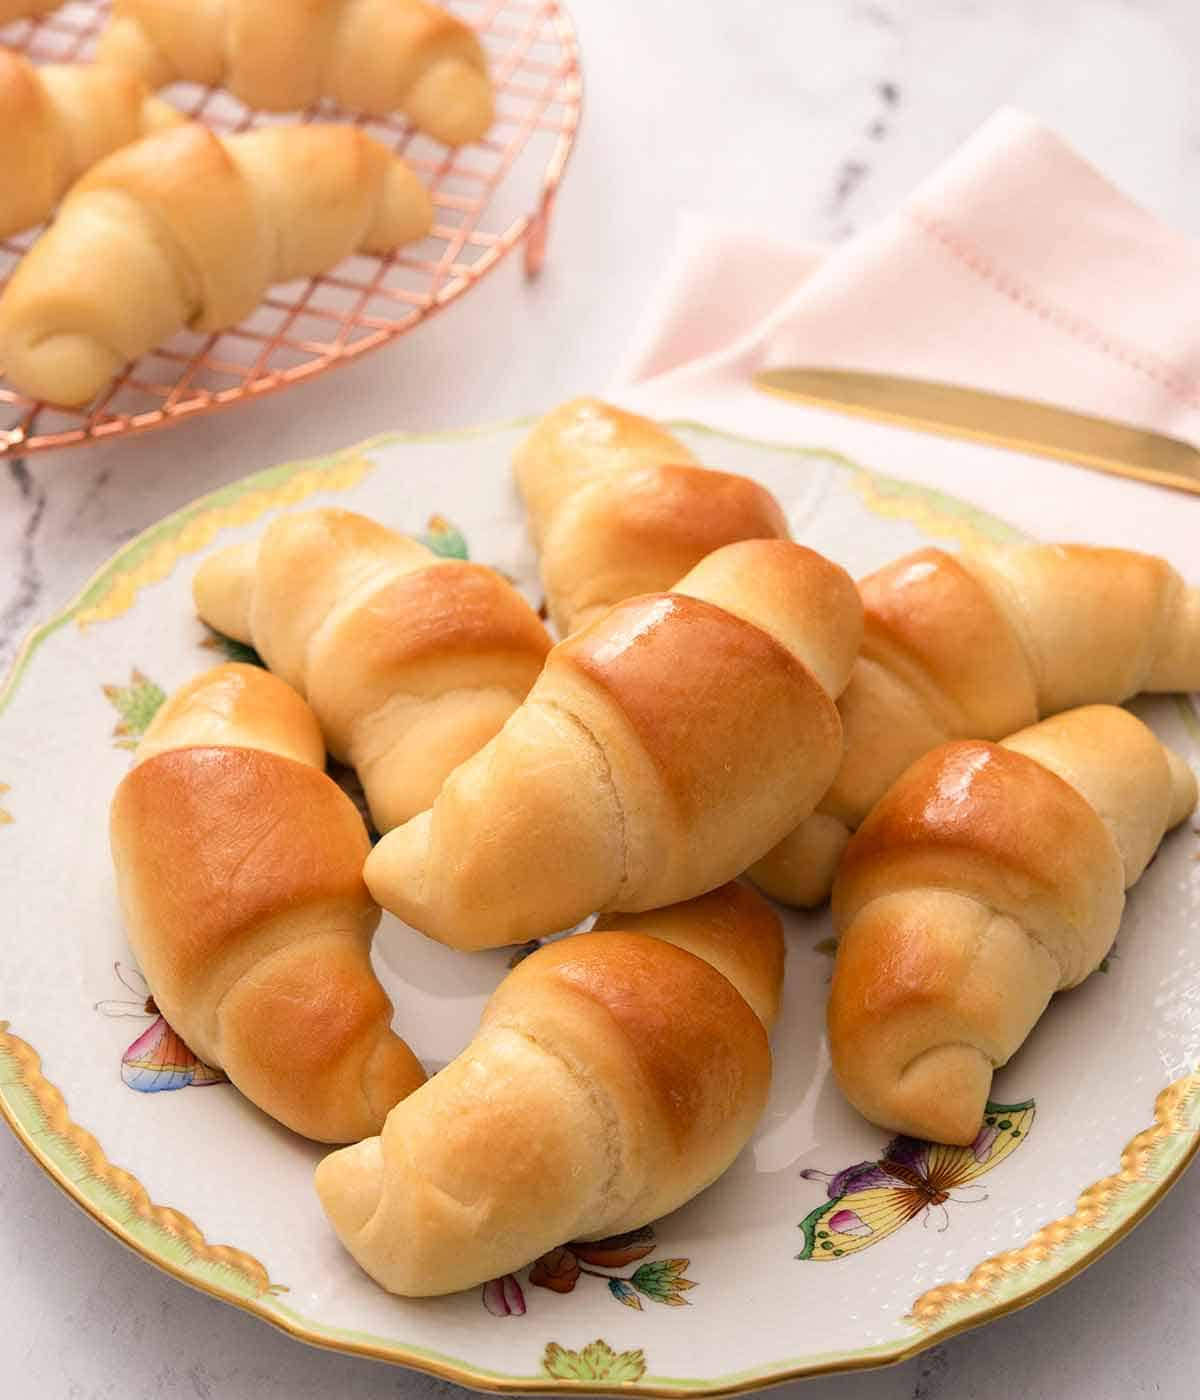 Close up of a plate of seven crescent rolls on a pink linen.